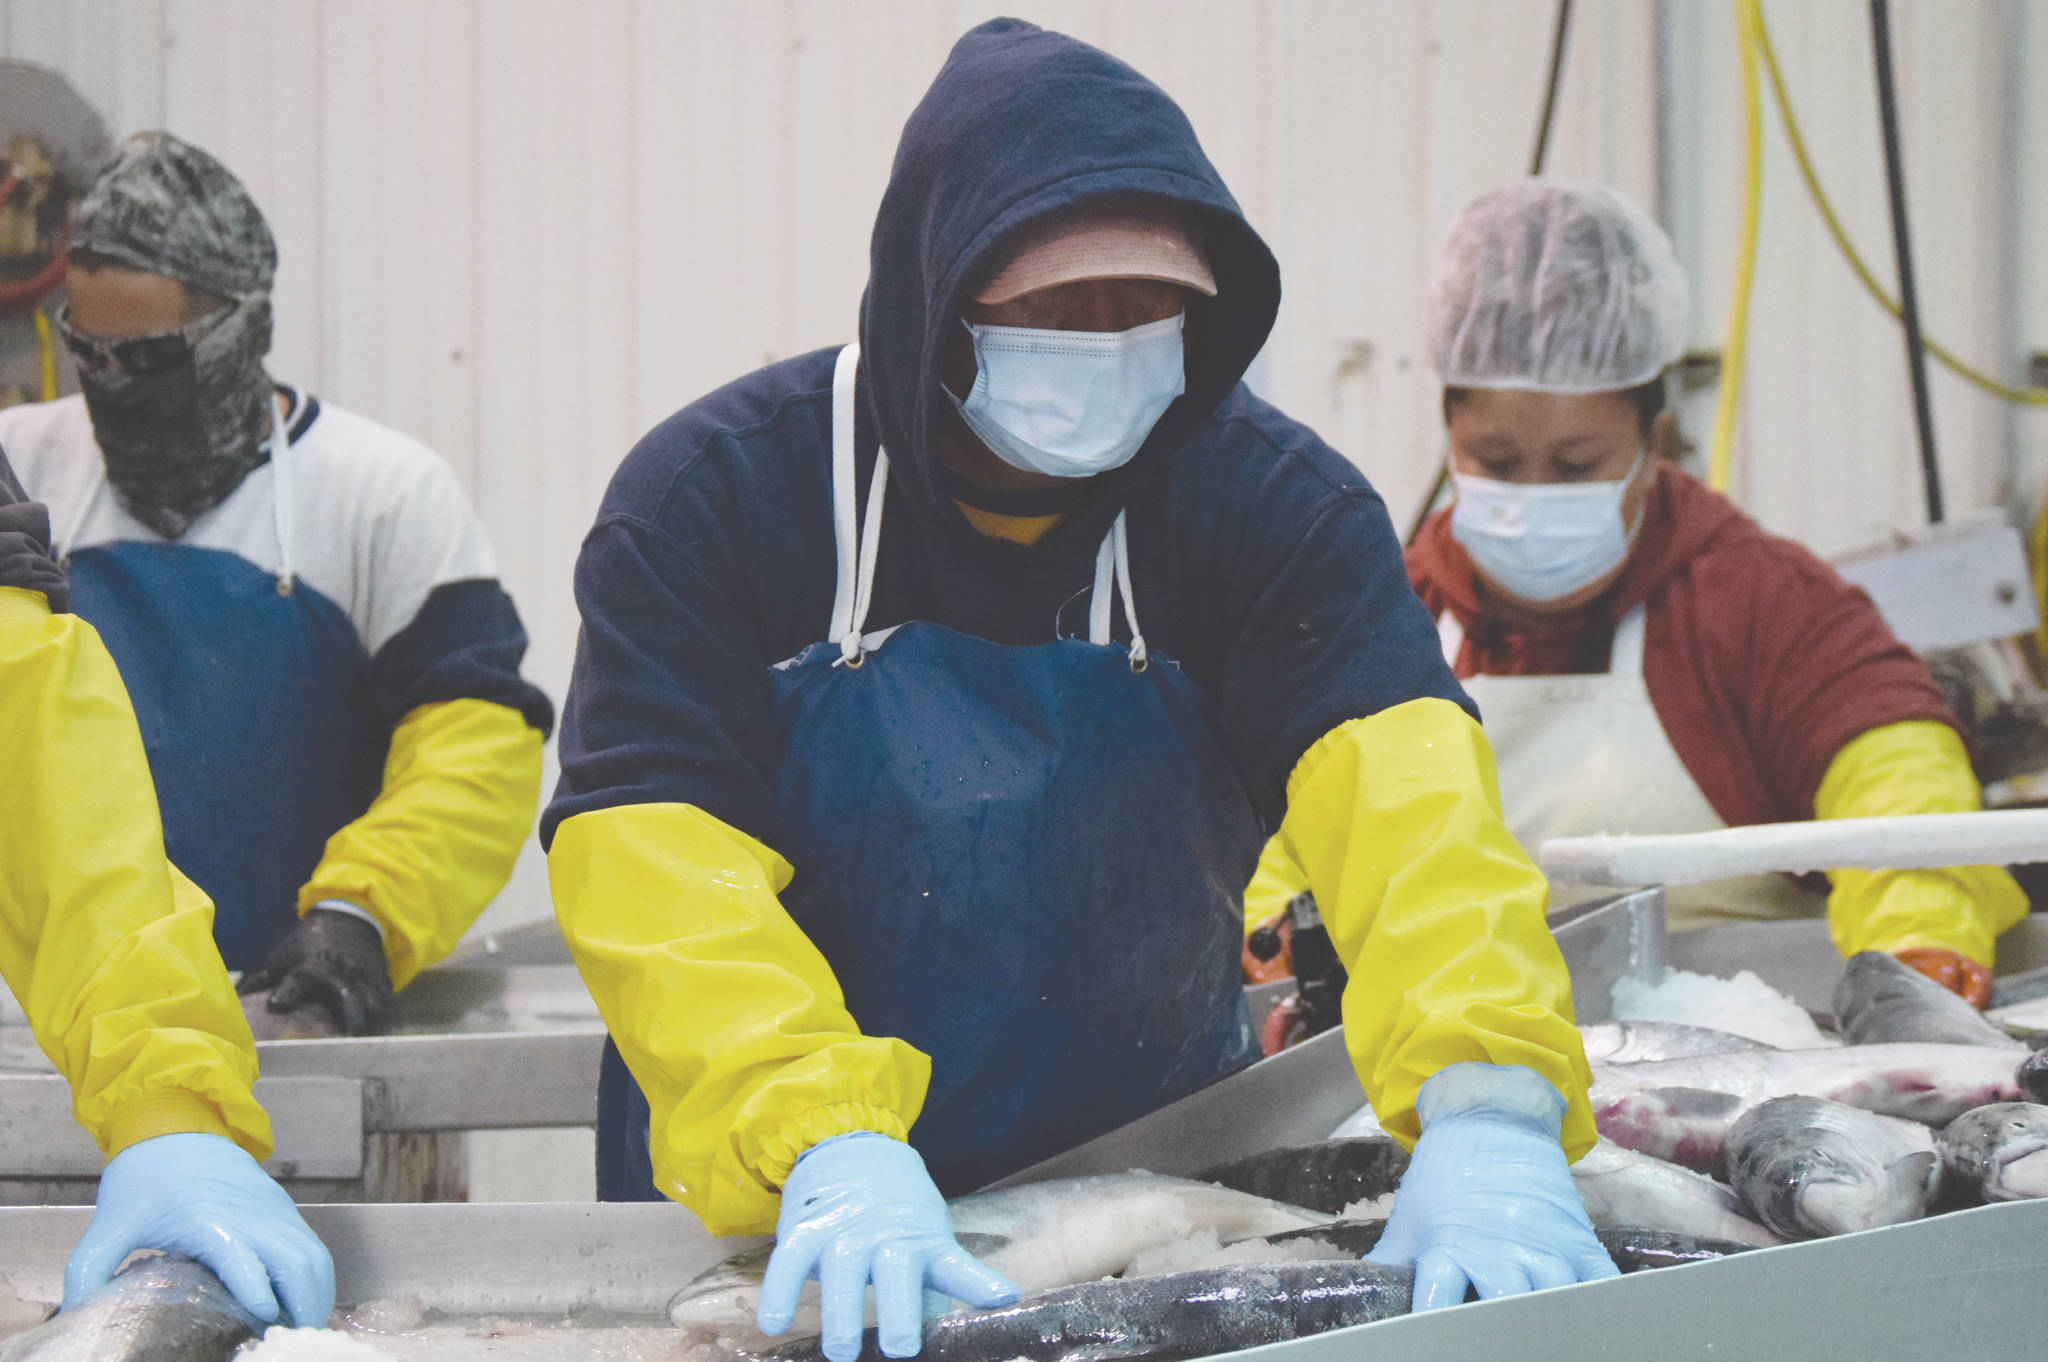 Joseph Lee, of Idaho, backed by Ivan Zarate, of Arizona, and Abiud Zarate, of Baja California, Mexico, arrange fish so their heads can be chopped off by a guillotine-style machine Tuesday, July 14, 2020, at Pacific Star Seafoods in Kenai, Alaska. (Photo by Jeff Helminiak/Peninsula Clarion)